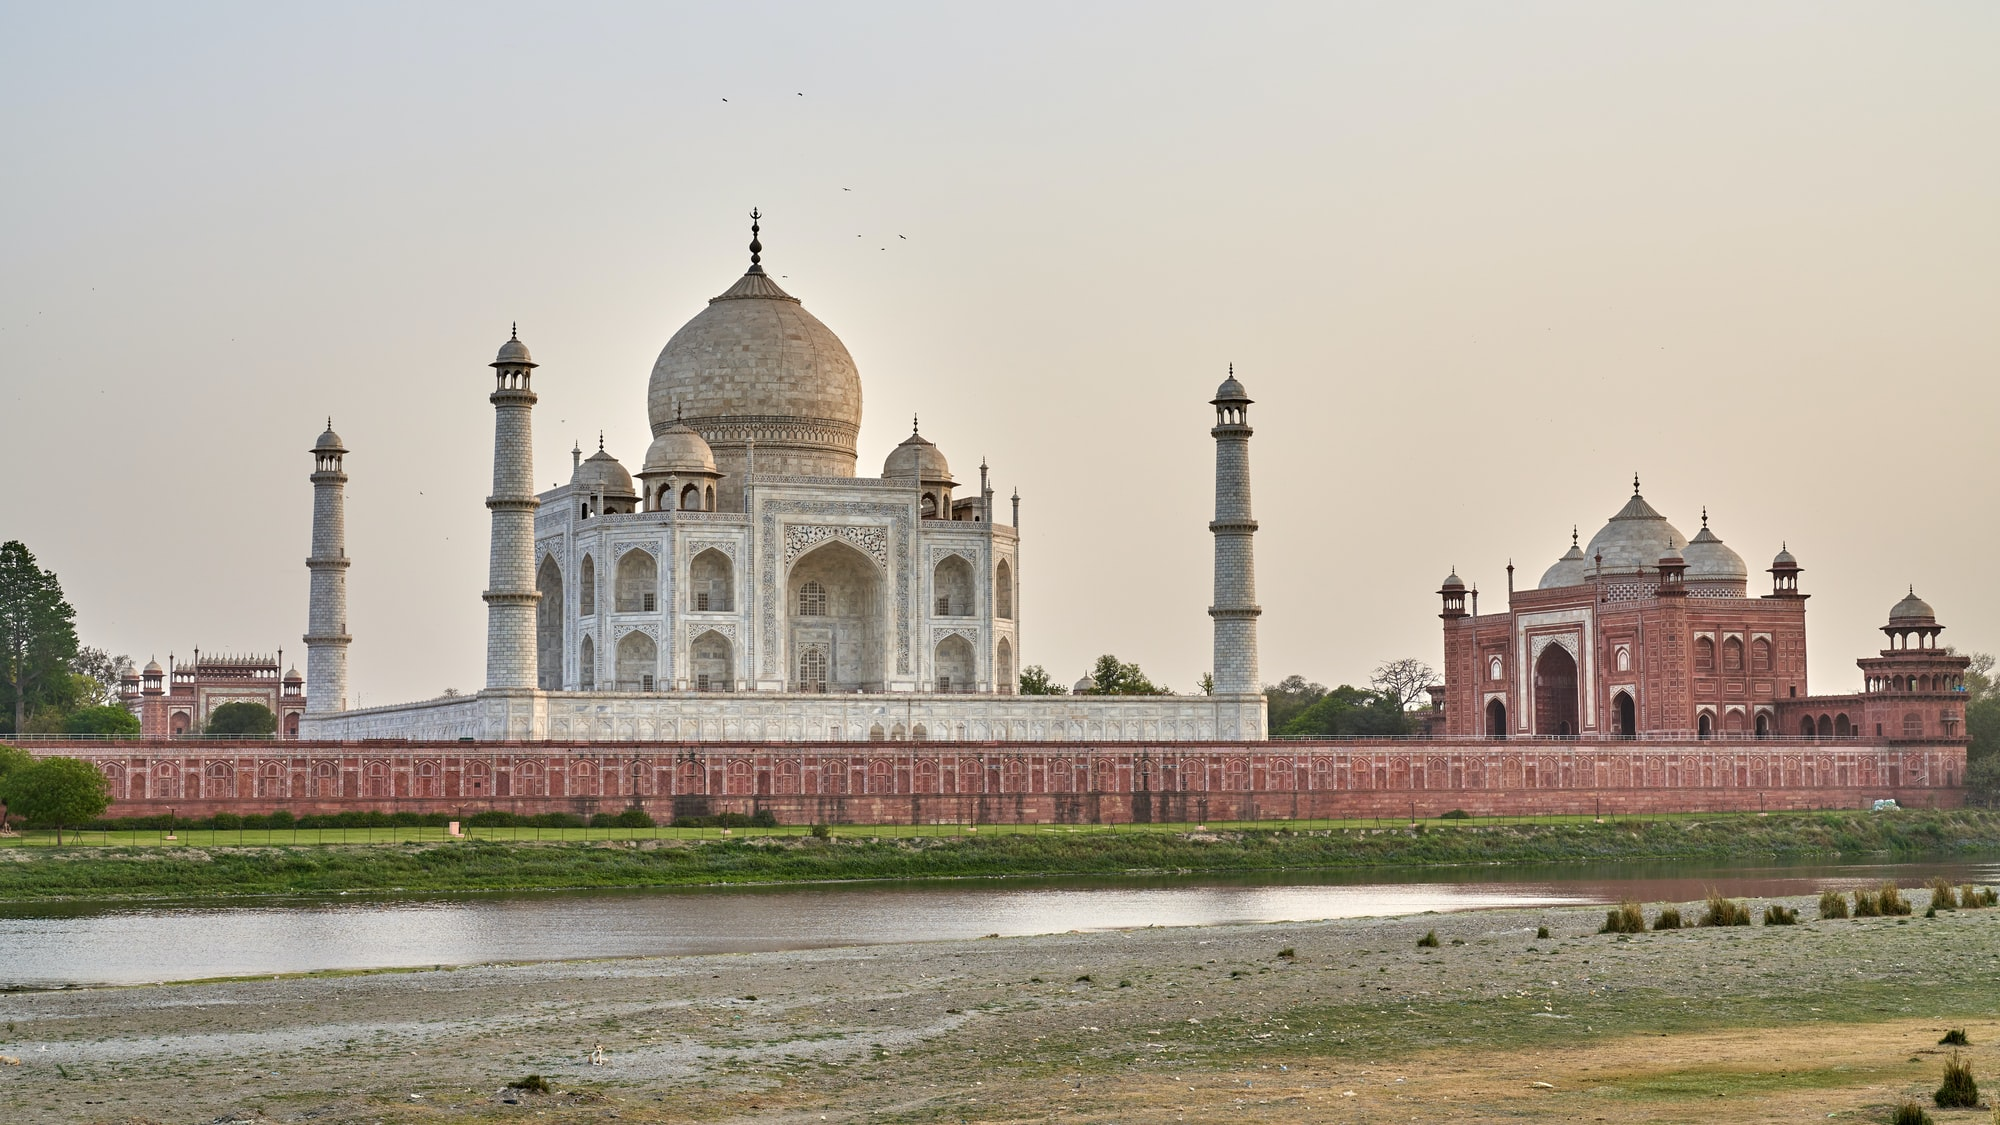 Mehtab Bagh (also as konwn as Moonlight Gardens,) is situated directly opposite of the Taj Mahal on the northern side of the Yamuna River.  The garden has the perfect alignment with the Taj; a lot of people say it is the best view point of Taj Mahal at sunset with a smaller crowd.